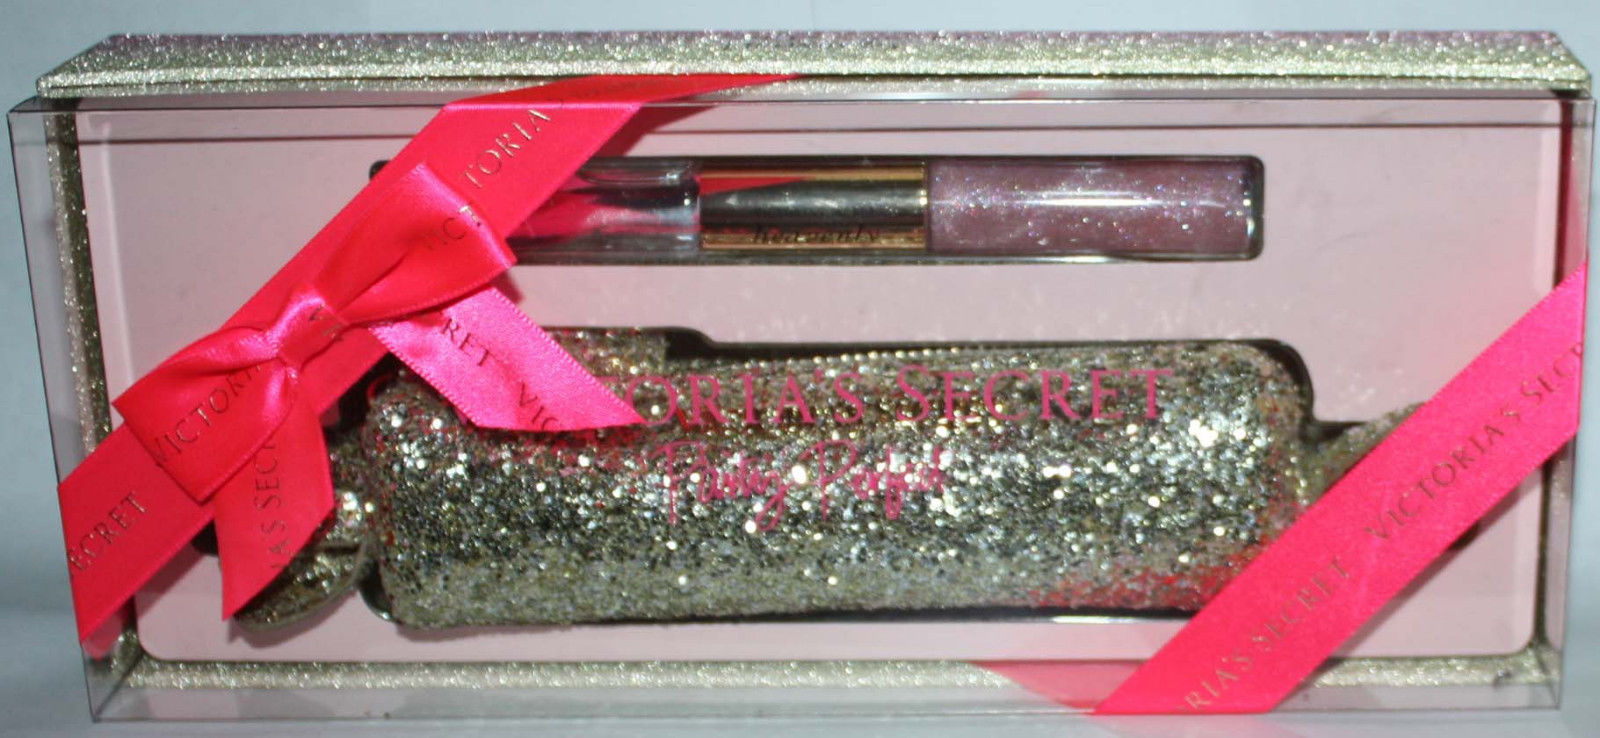 Victoria's Secret Party Perfect Heavenly Rollerball Parfum Lip Gloss Duo & Bag 09832